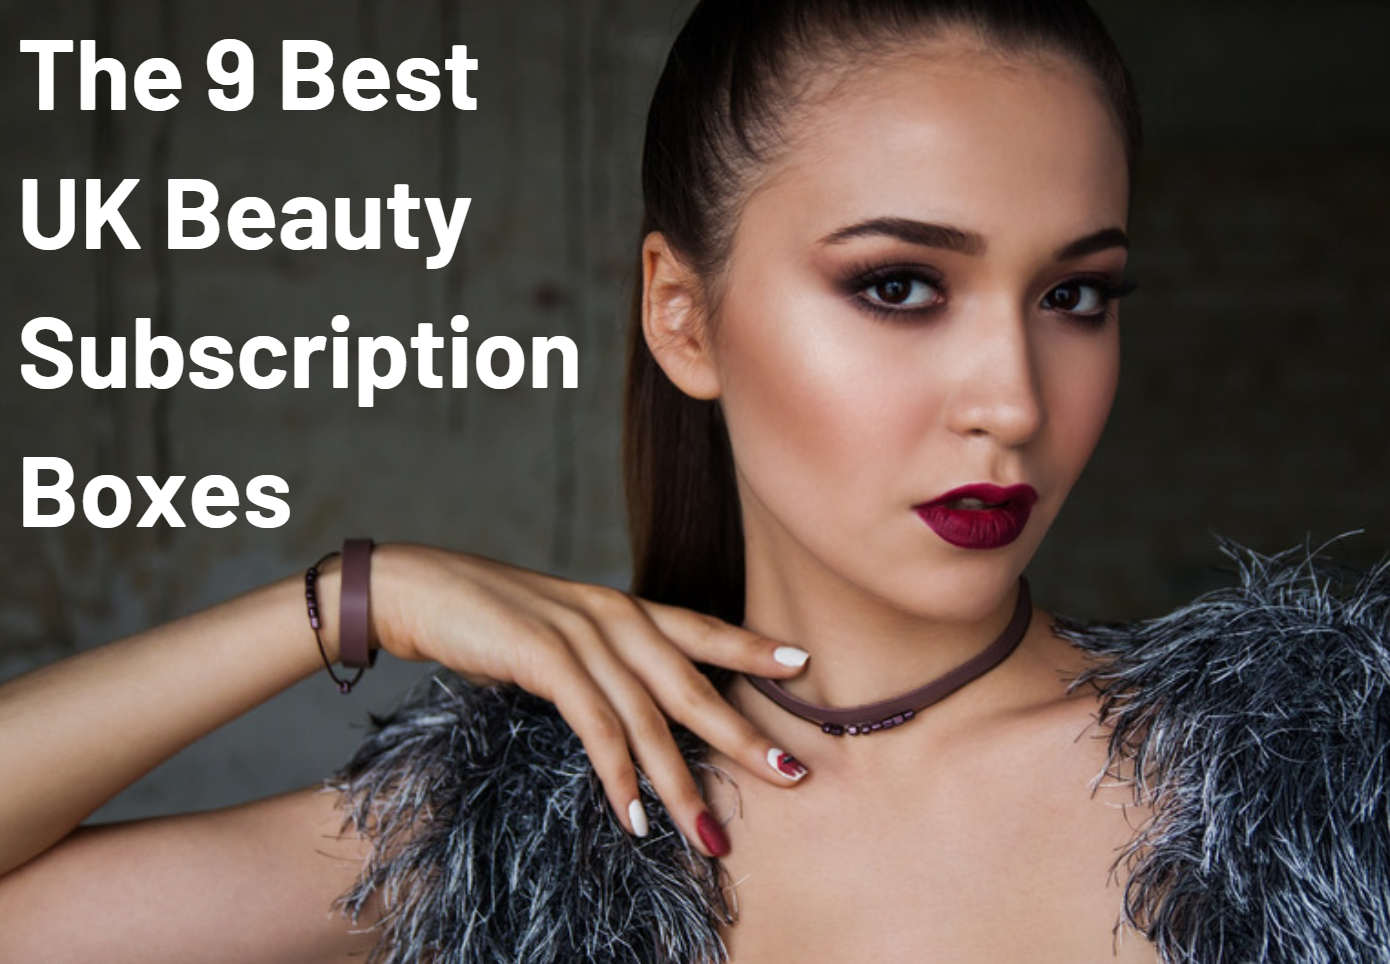 The 9 Best UK Beauty Subscription Boxes 2021